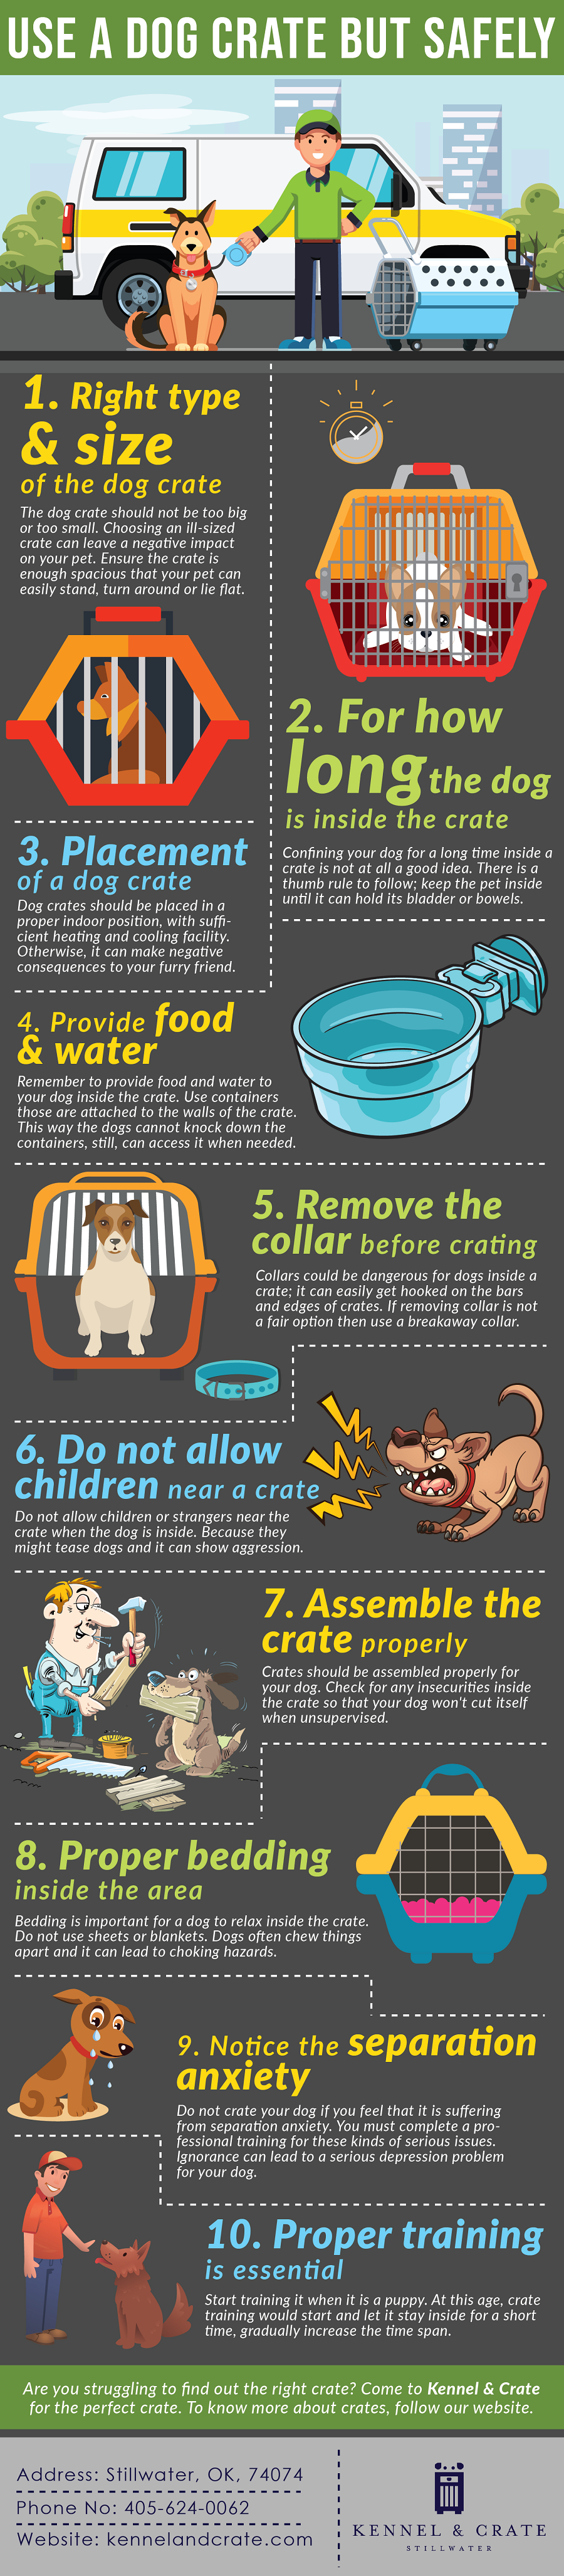 Use A Dog Crate But Safely Infographic